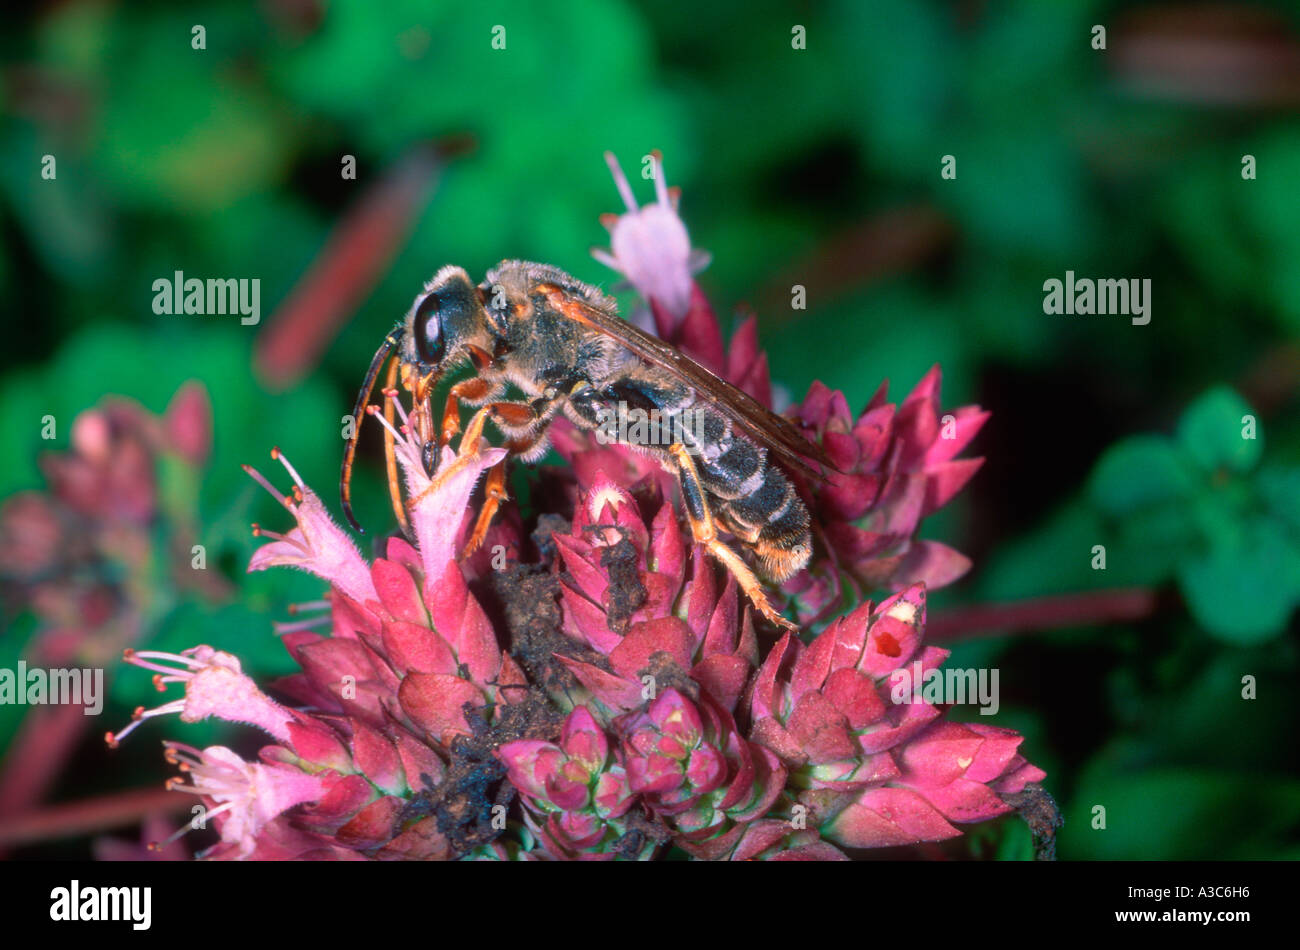 Bee, Family Halictidae. Collecting nectar on flower - Stock Image